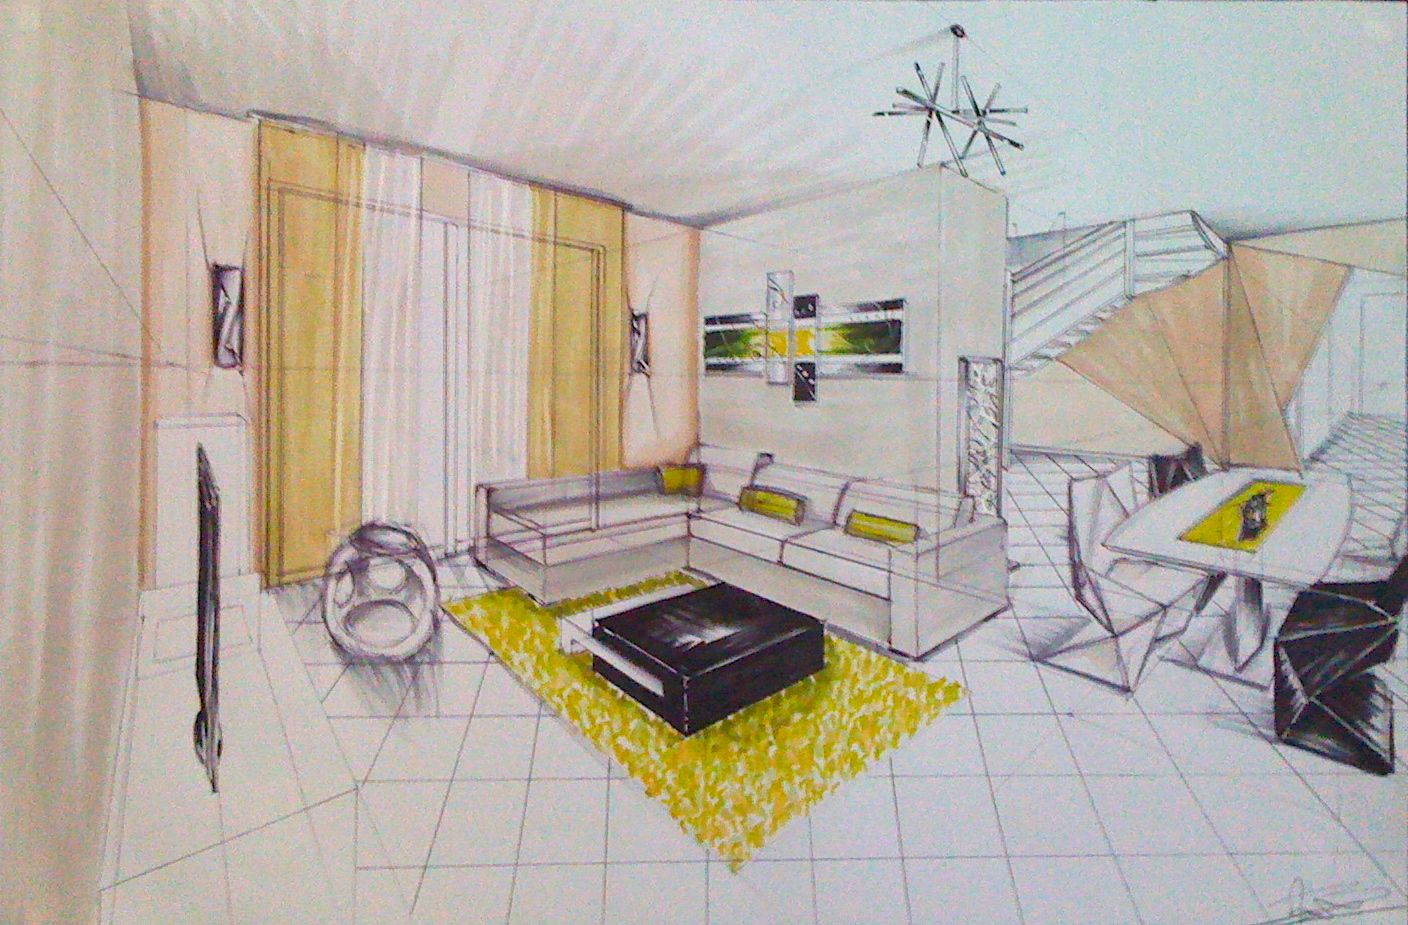 Dessins d 39 interieur de maisons en perspective anabelle for L architecture d interieur